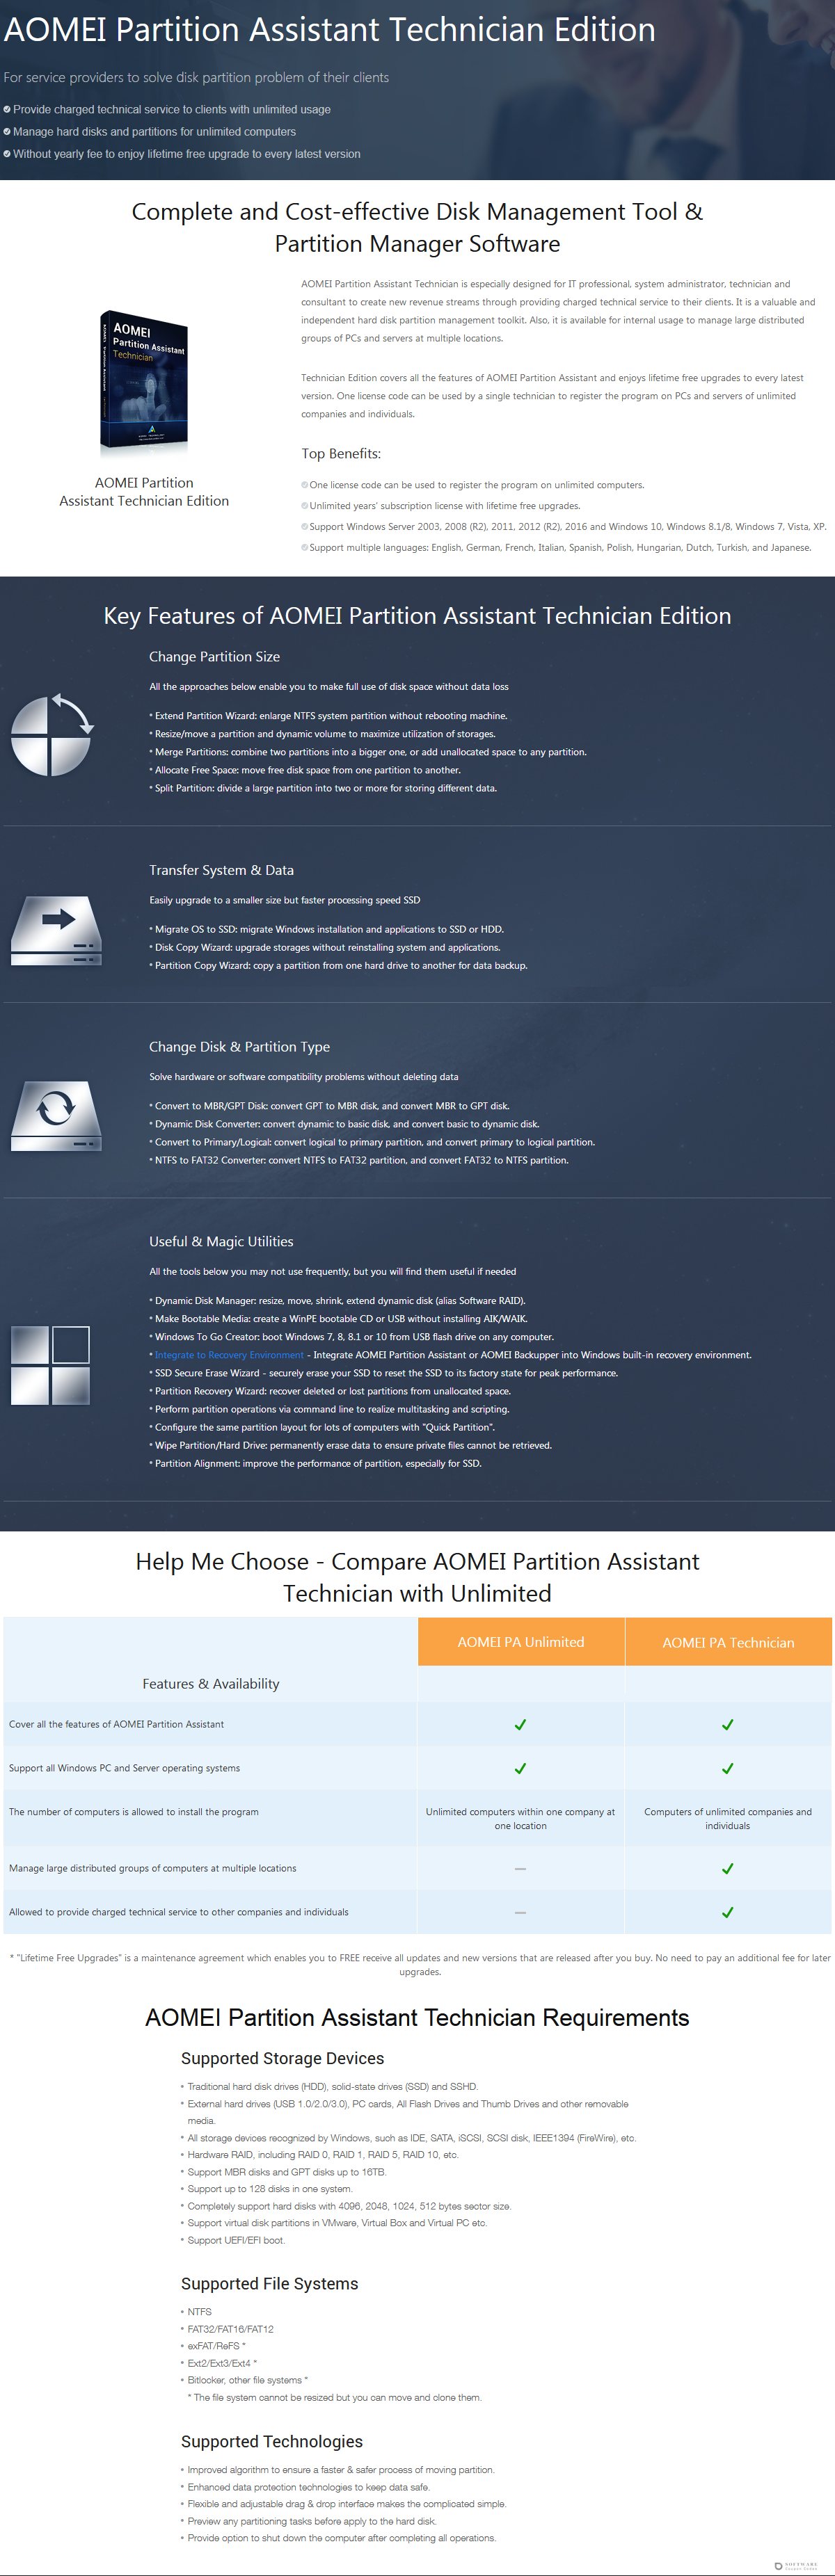 AOMEI Partition Assistant Unlimited Edition Discount Coupon Code